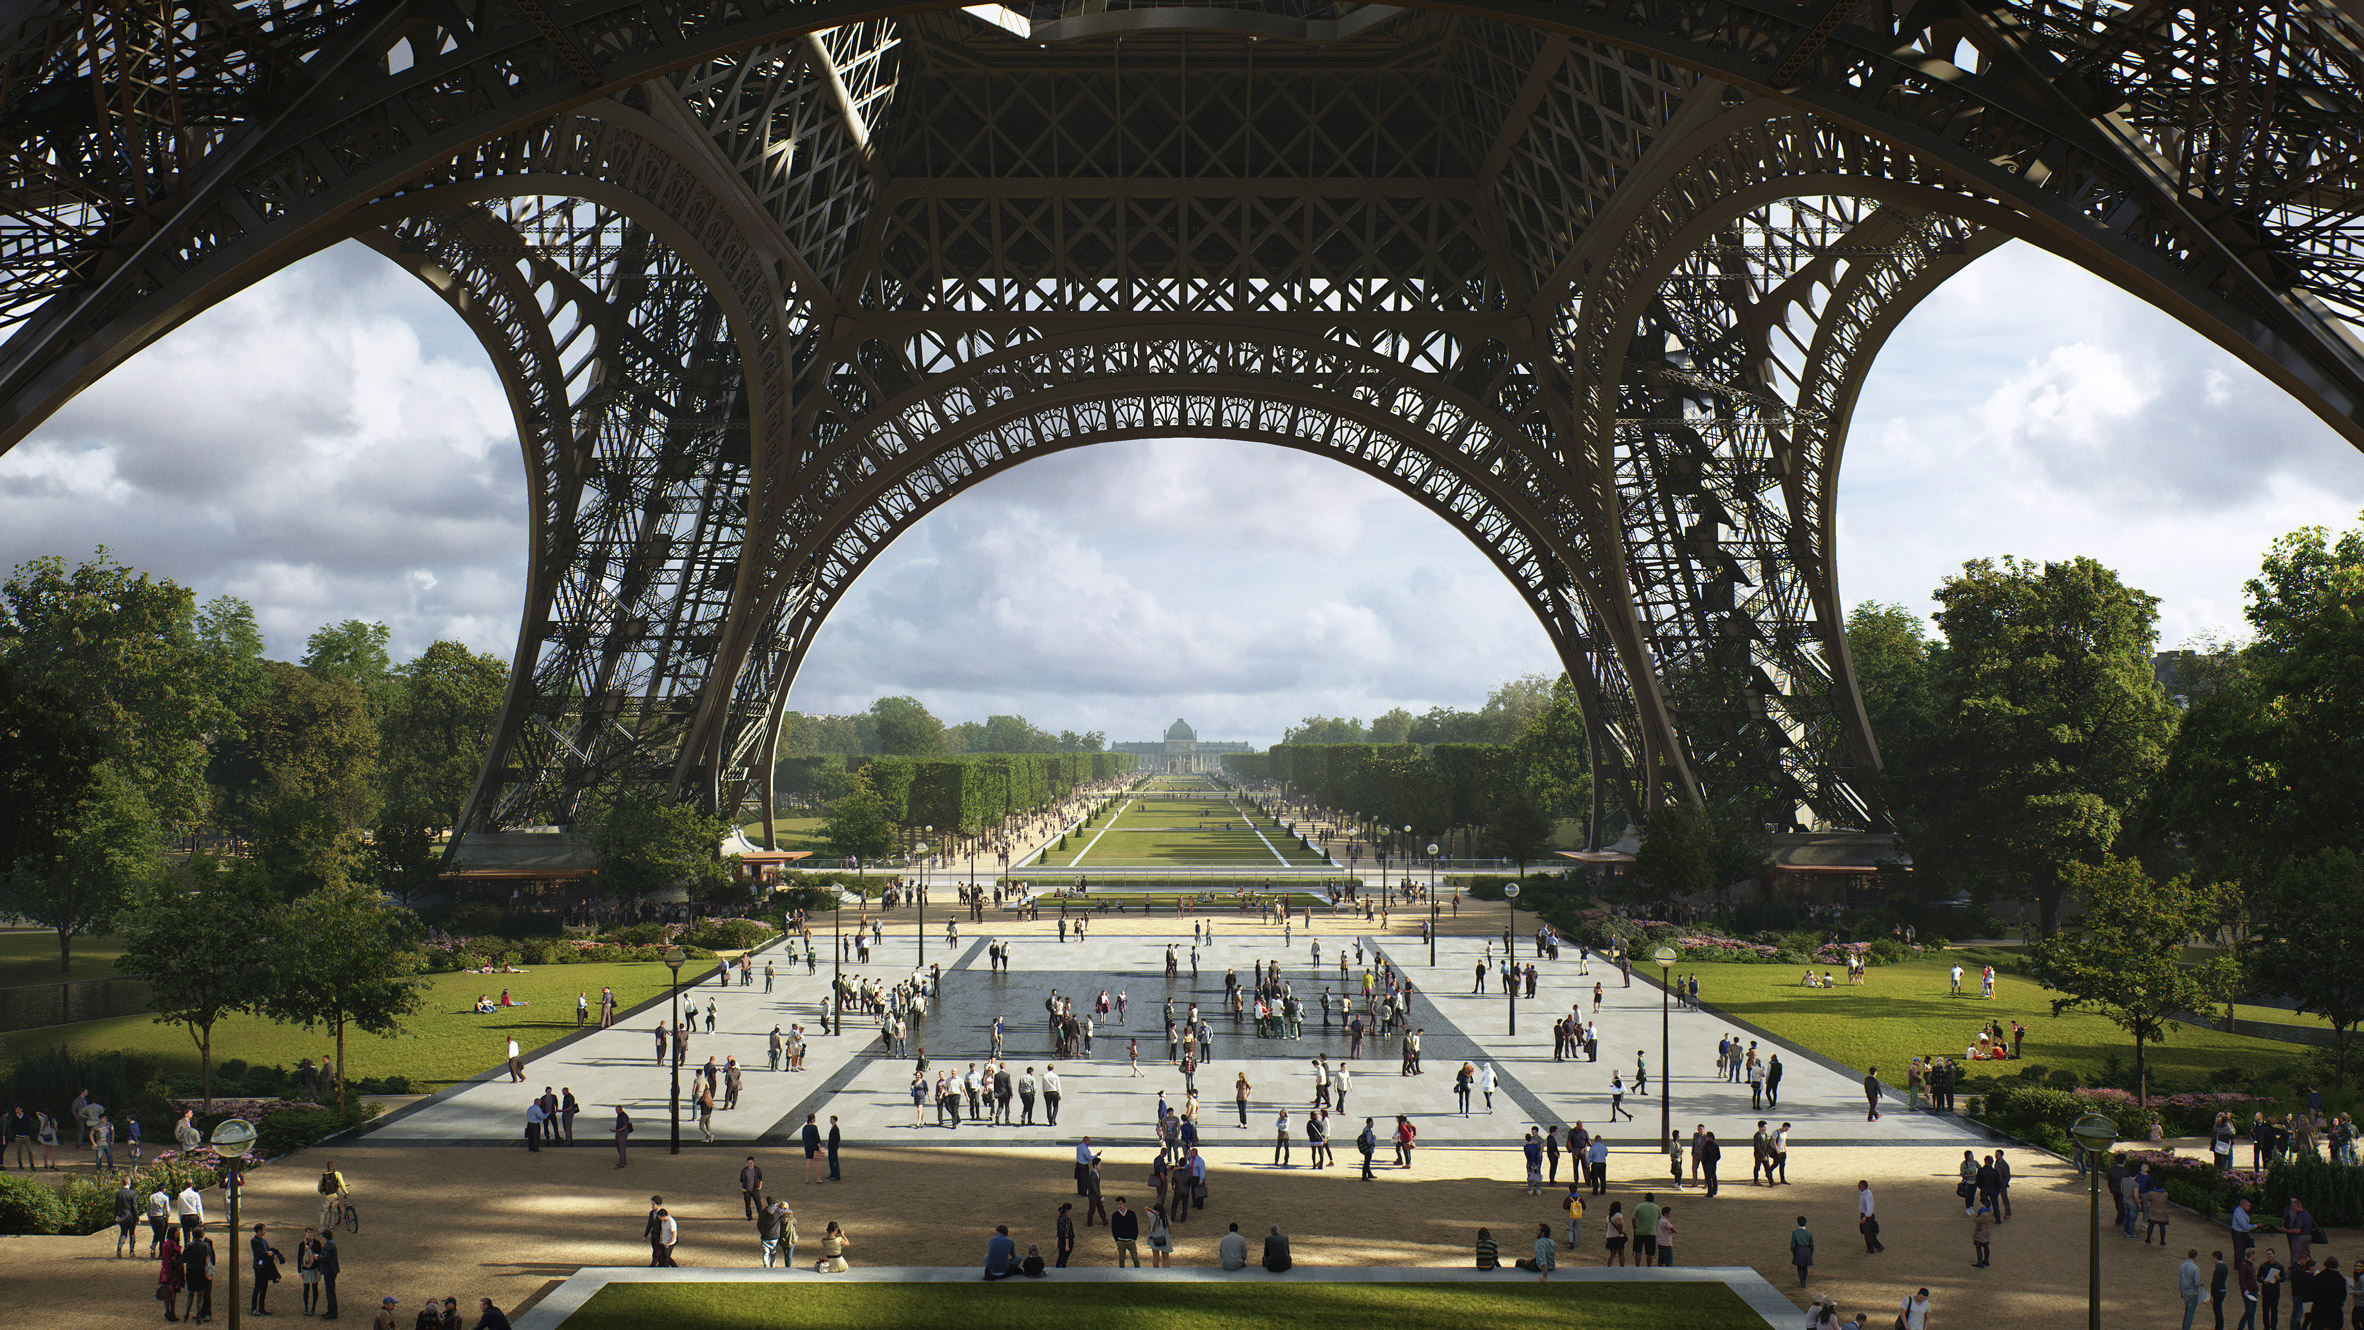 Tour Eiffel : Le plus grand jardin de Paris